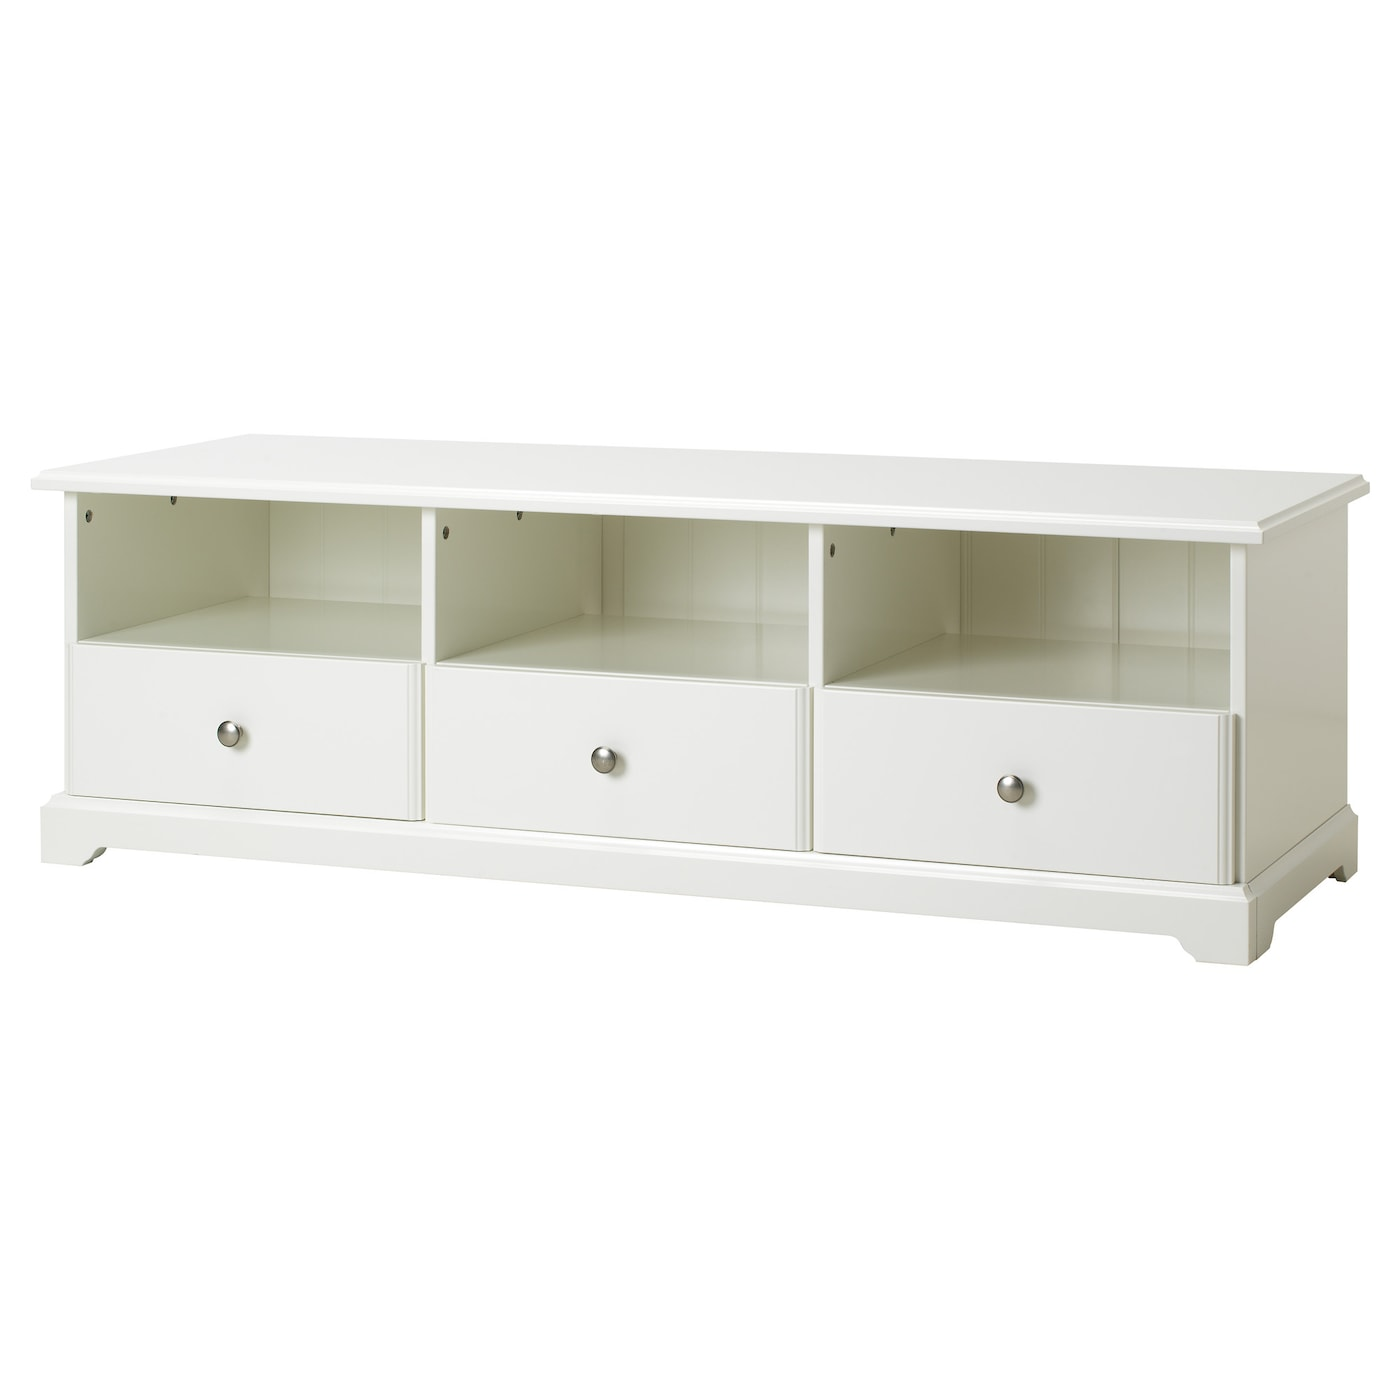 Tv Stands Media Units Ikea Ireland Dublin # Combinaison Besta Et Liatorp